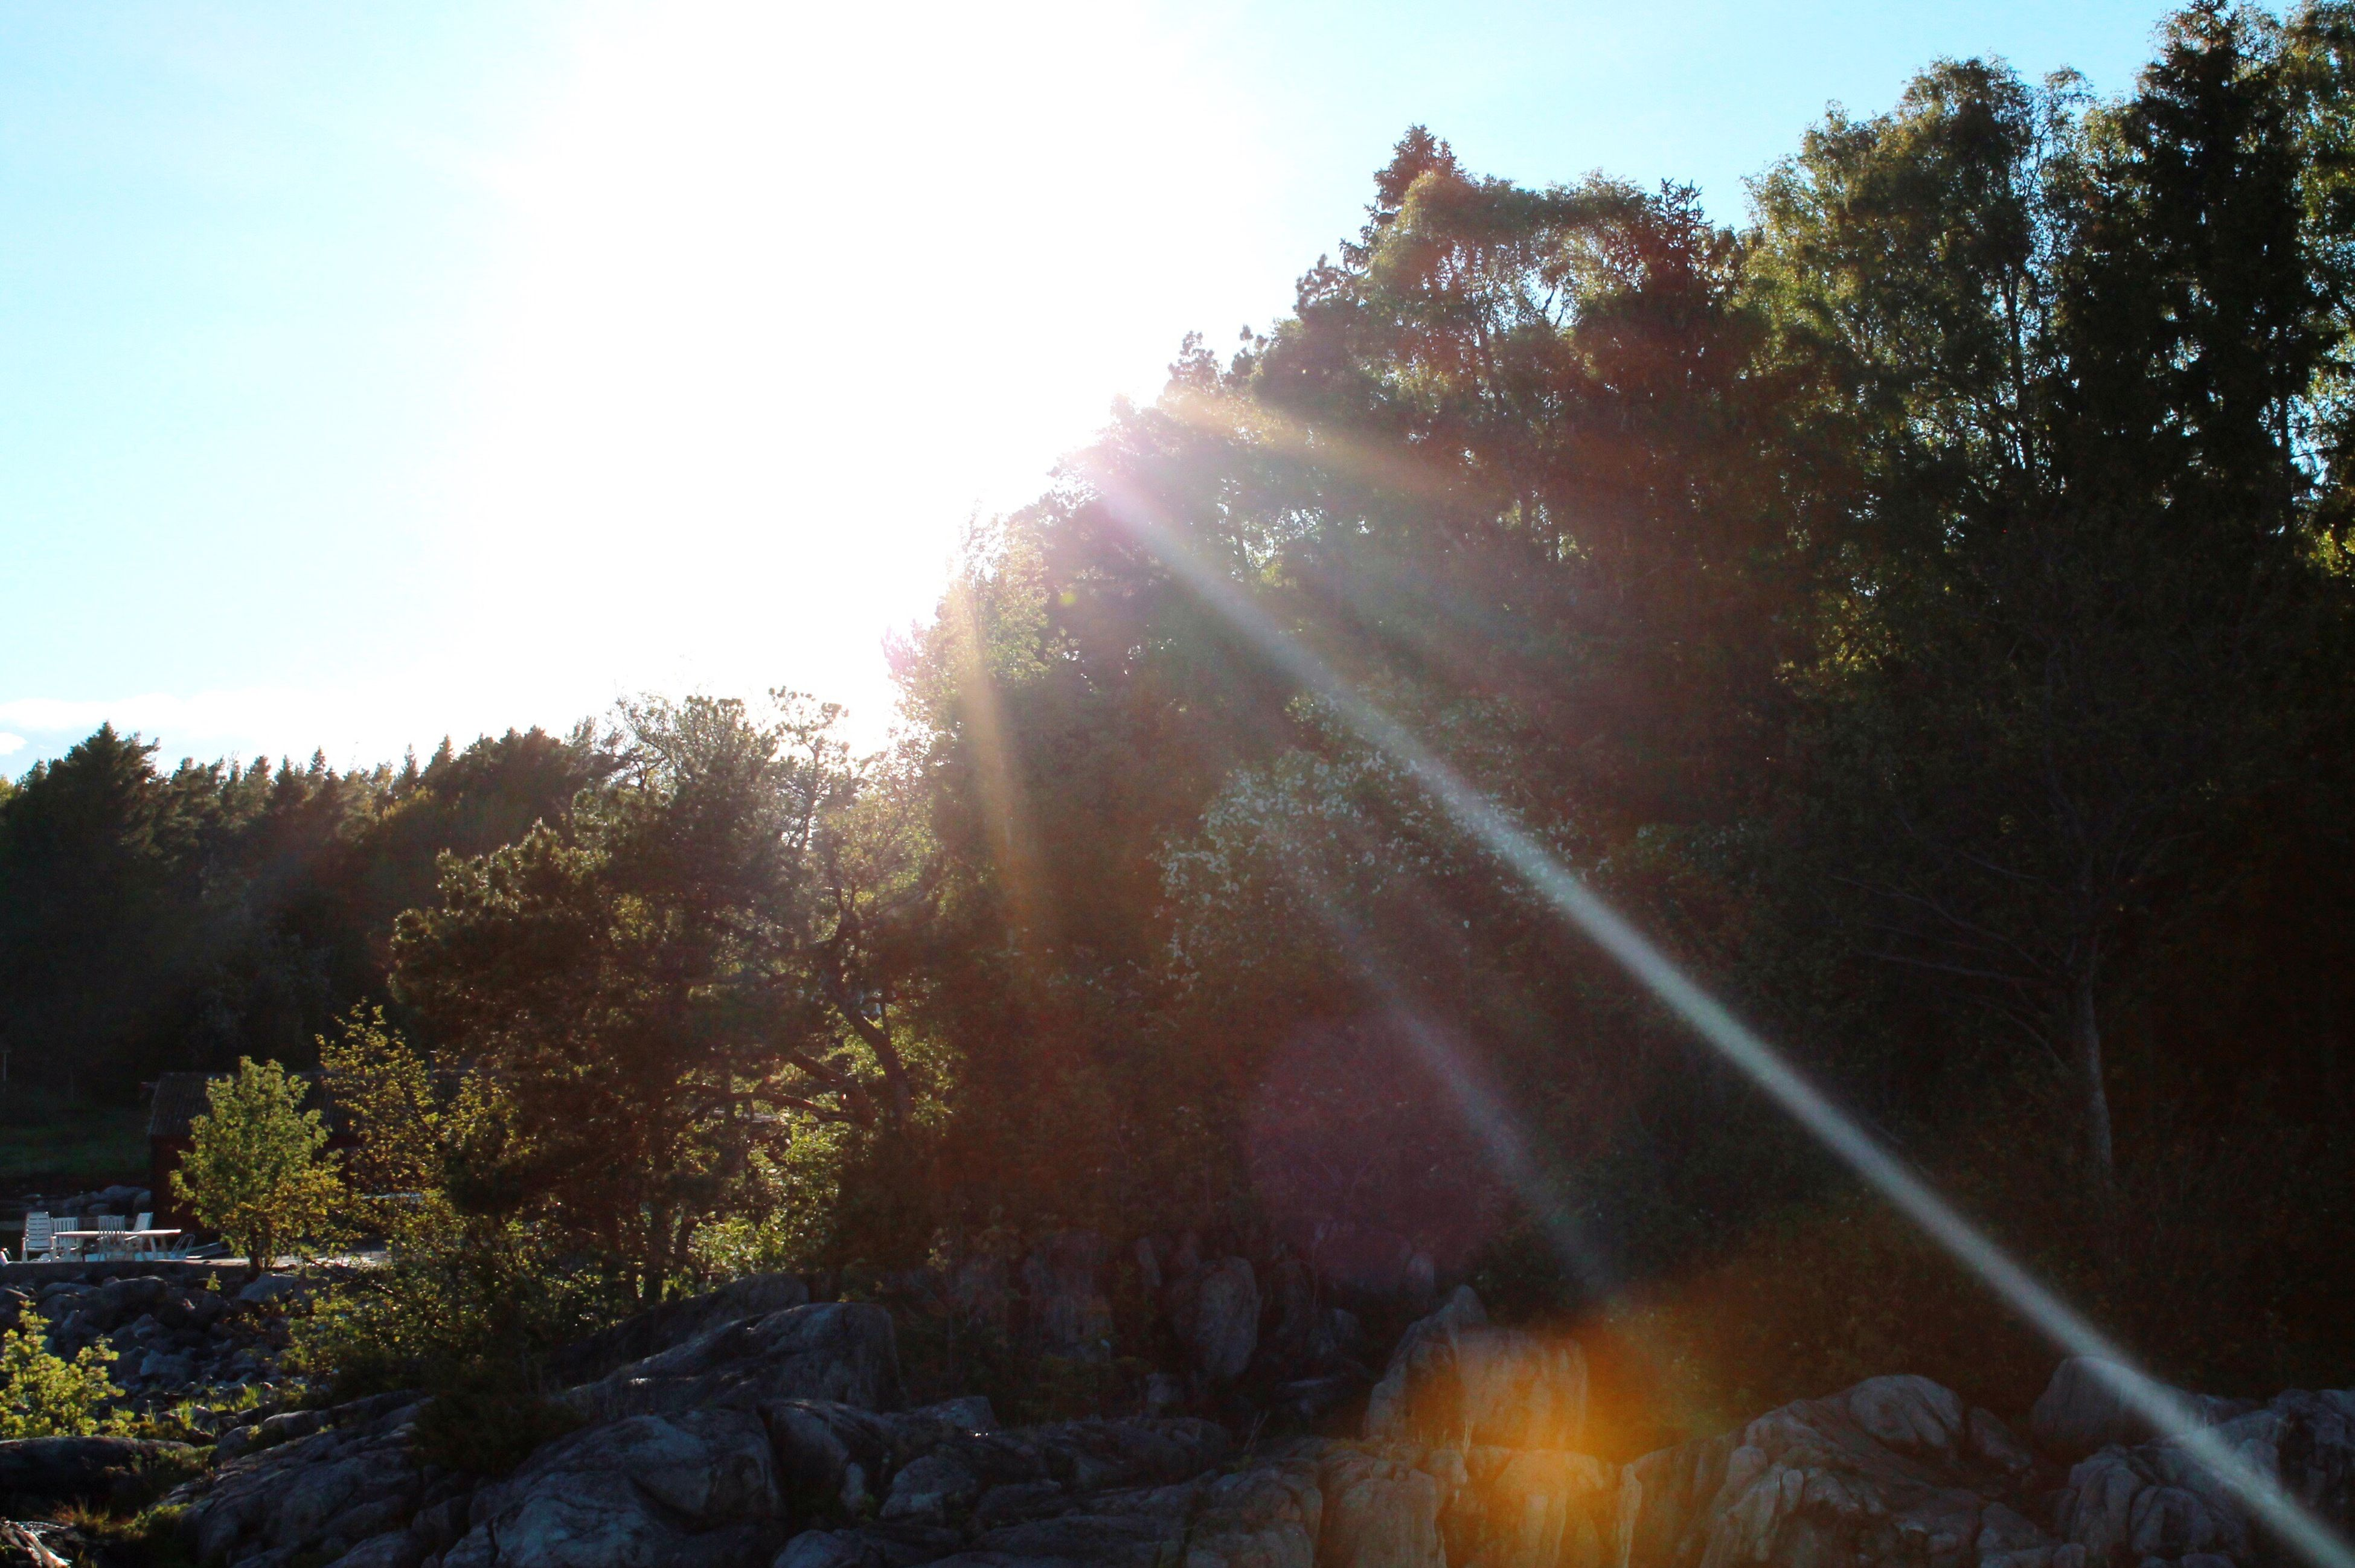 tree, sunlight, sunbeam, nature, growth, forest, sun, day, no people, outdoors, tranquility, beauty in nature, sky